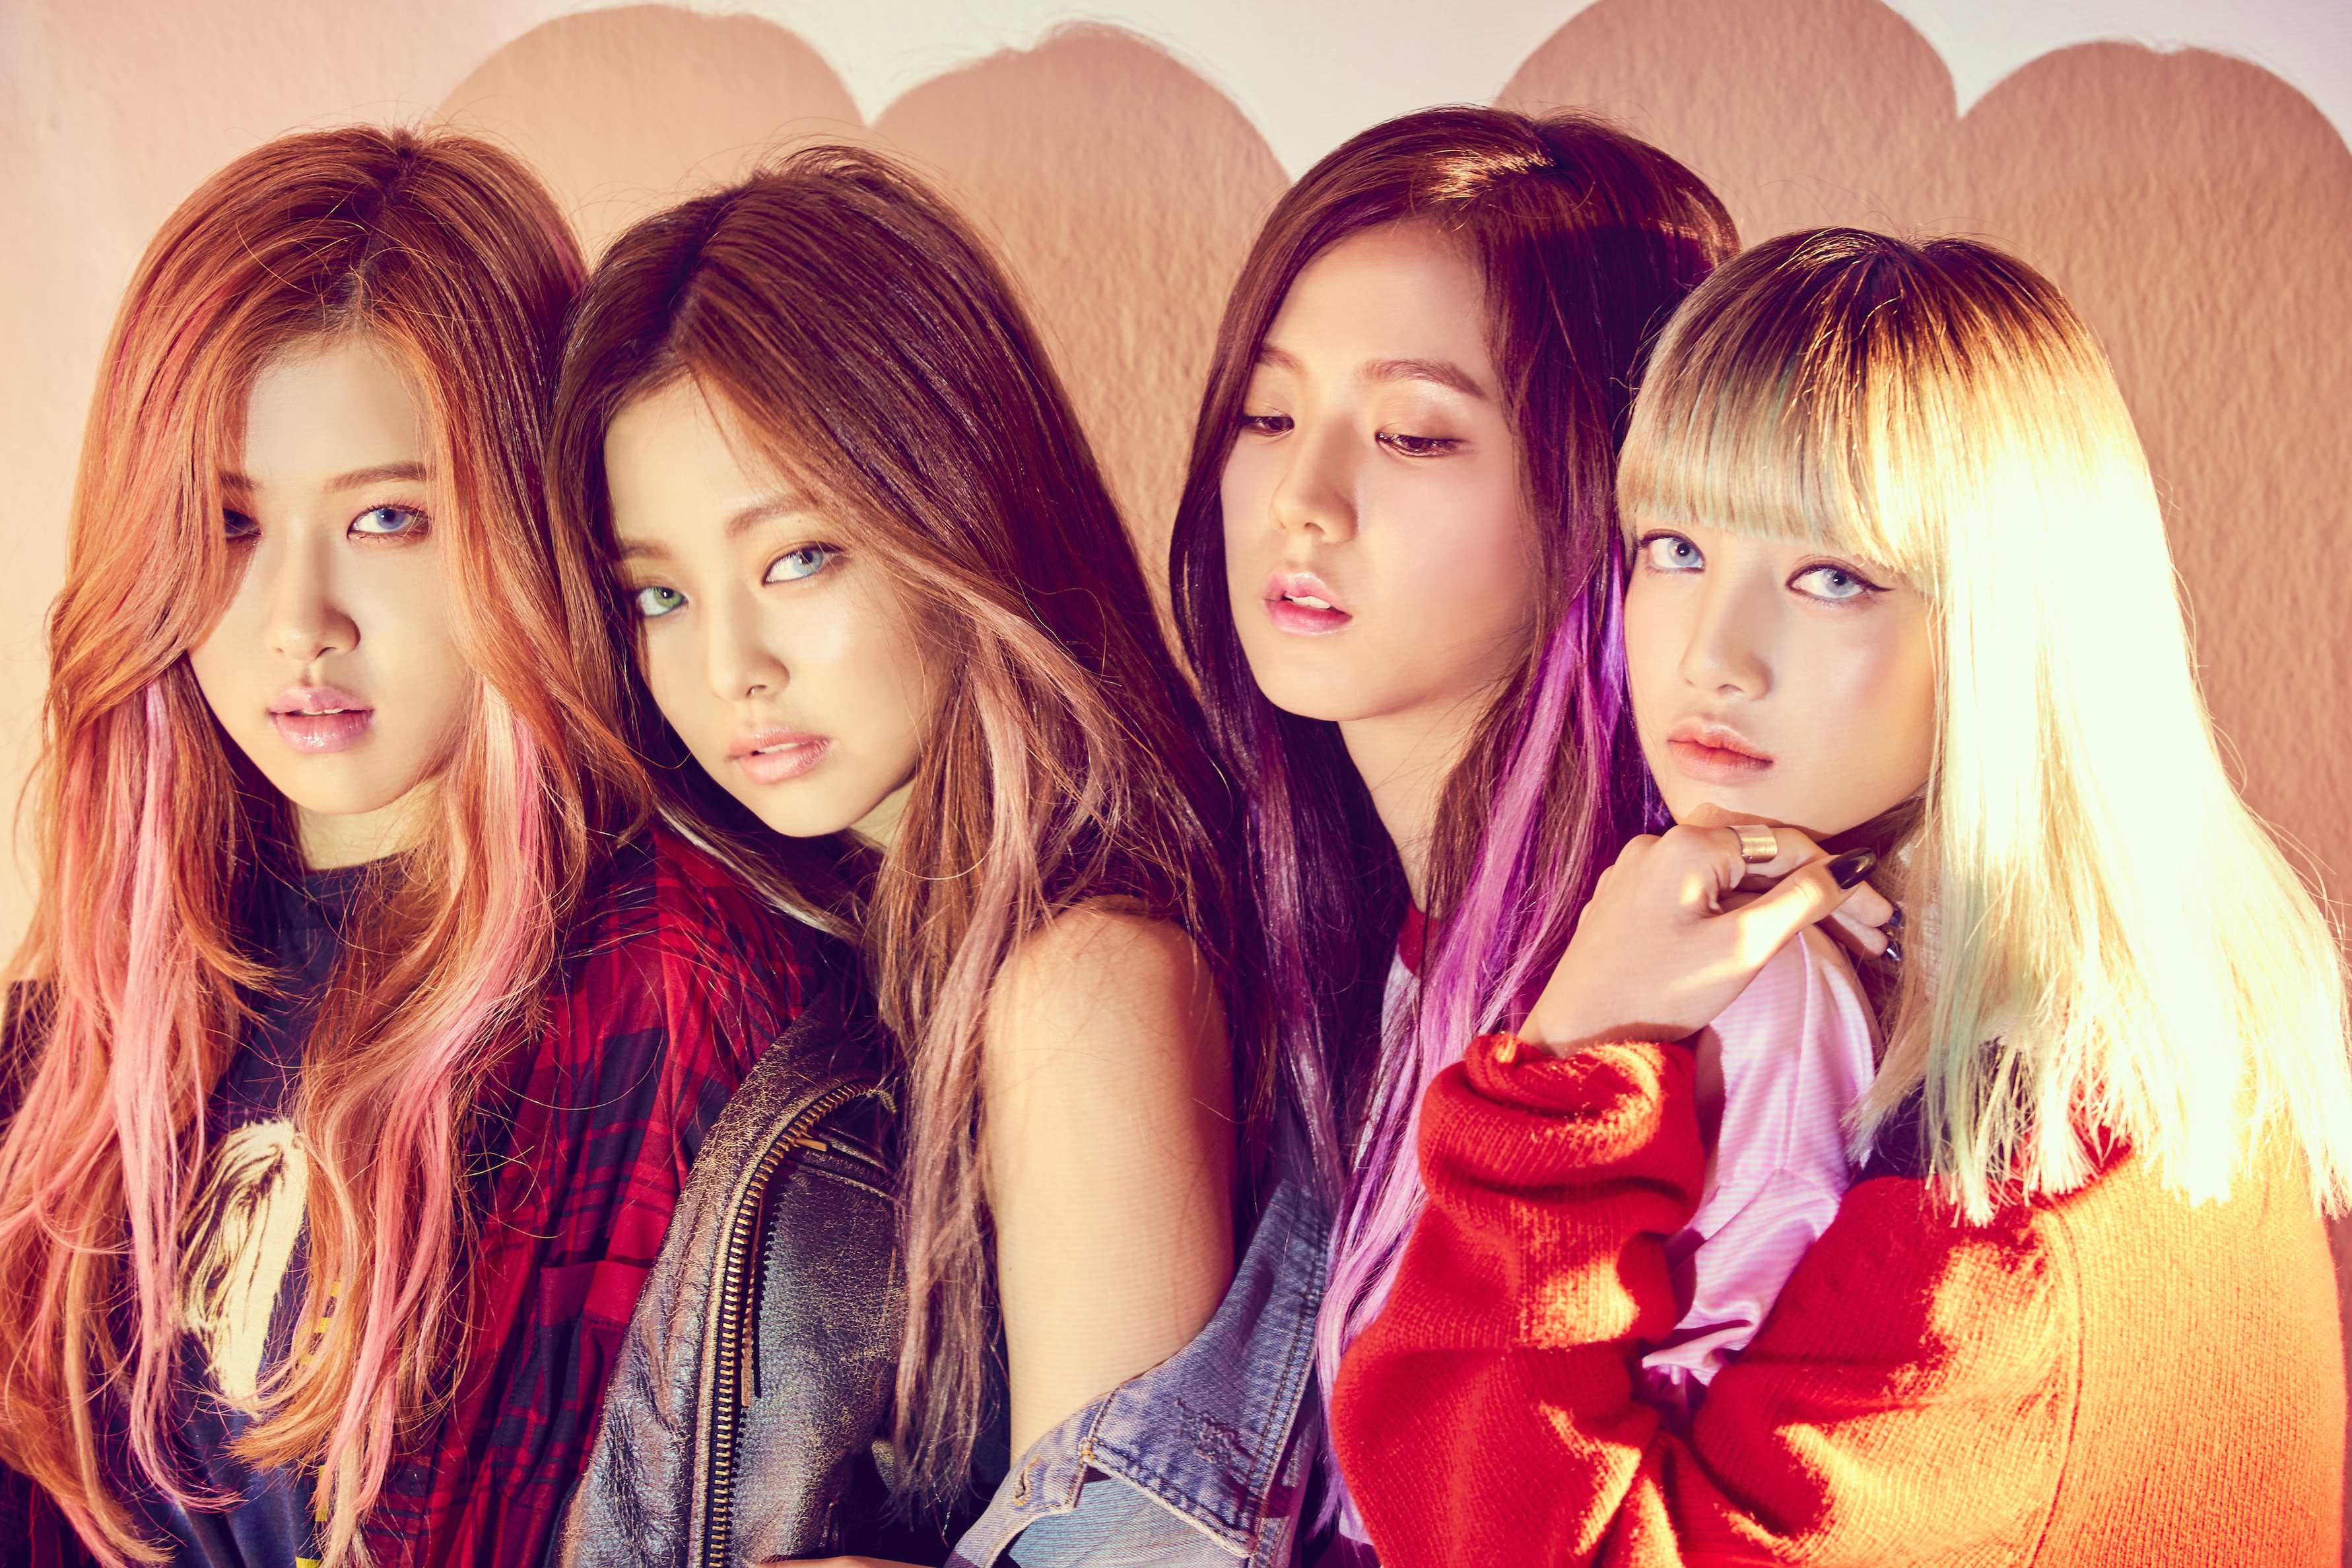 Blackpink Hd Music 4k Wallpapers Images Backgrounds